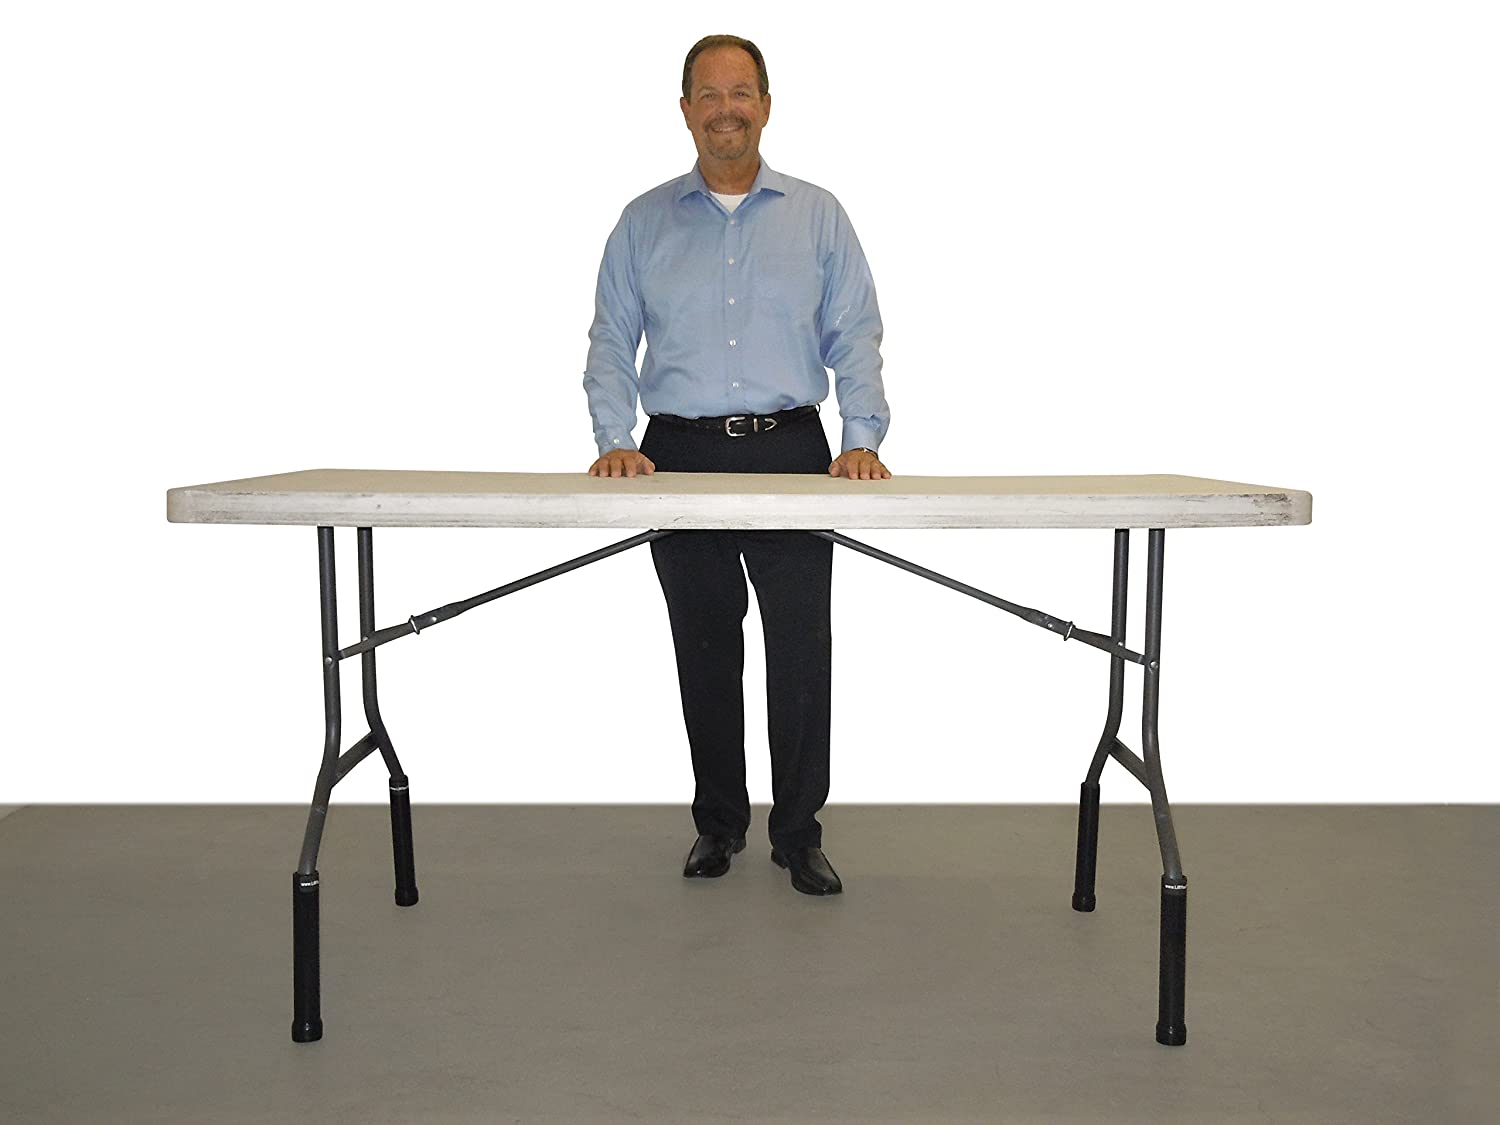 Etonnant Lift Your Table ®? Risers Lifts ... And Save Your Back! (Black): Amazon.ca:  Home U0026 Kitchen